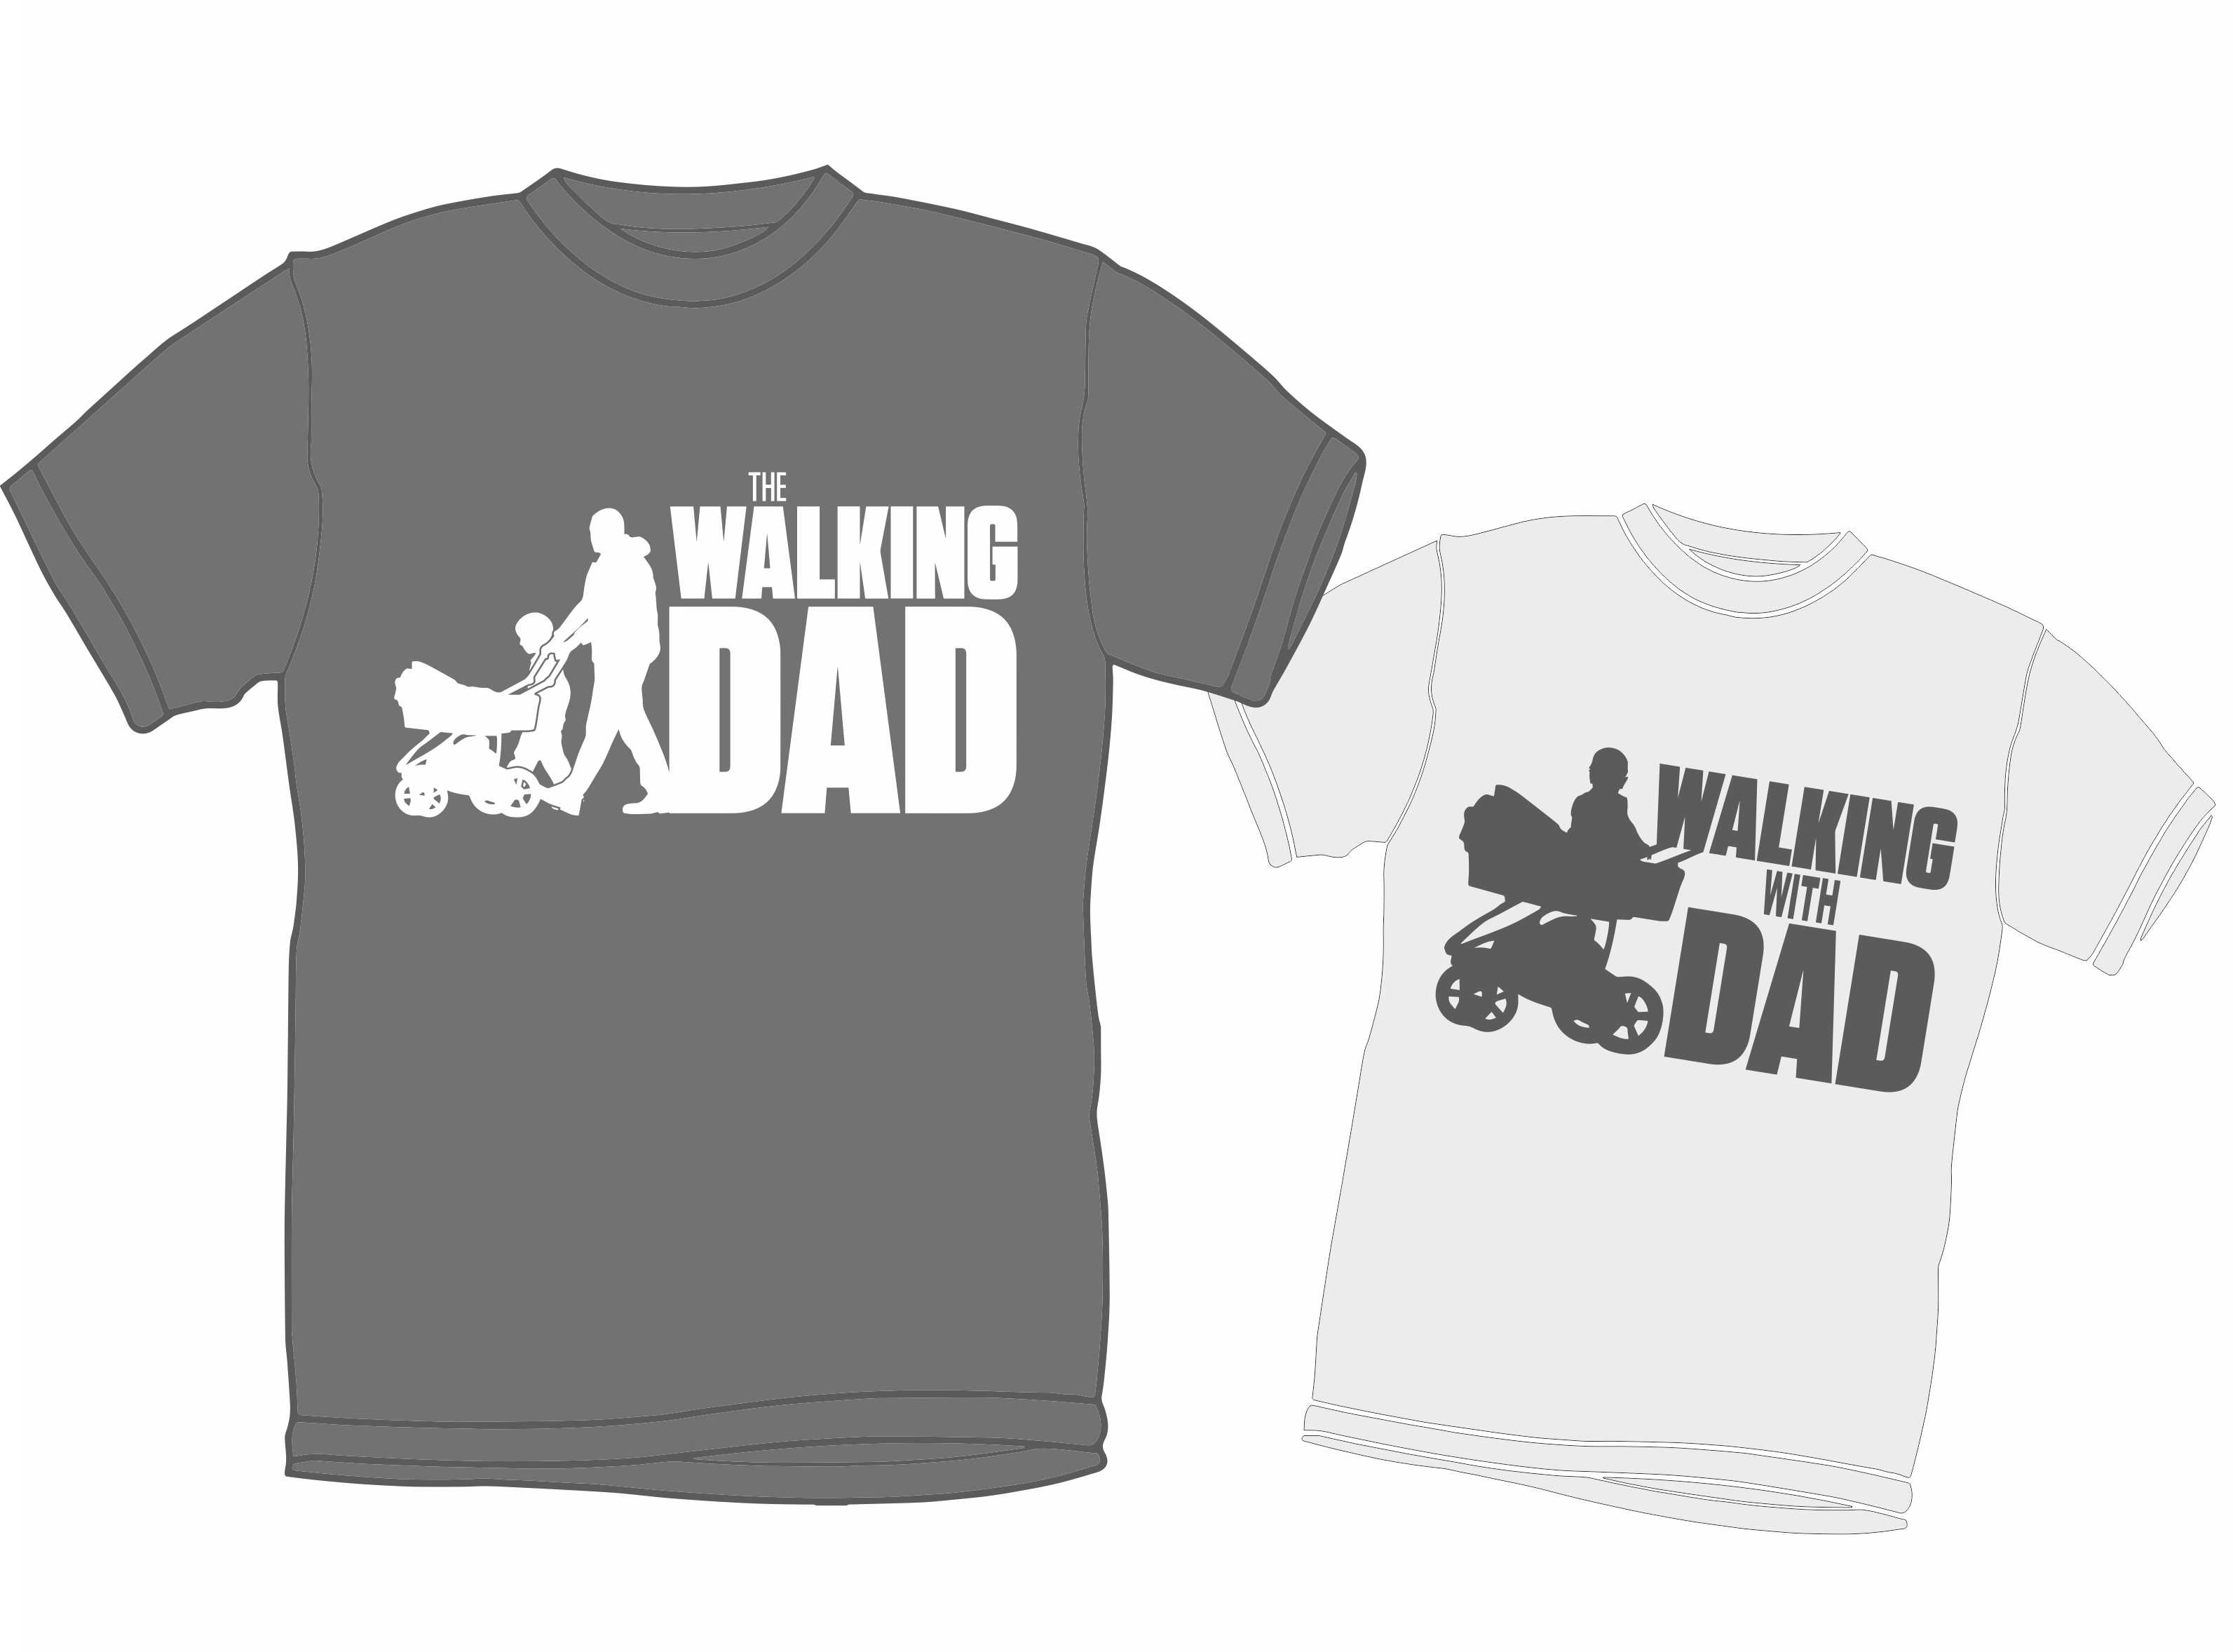 thewalkingdad+walkingwithdad